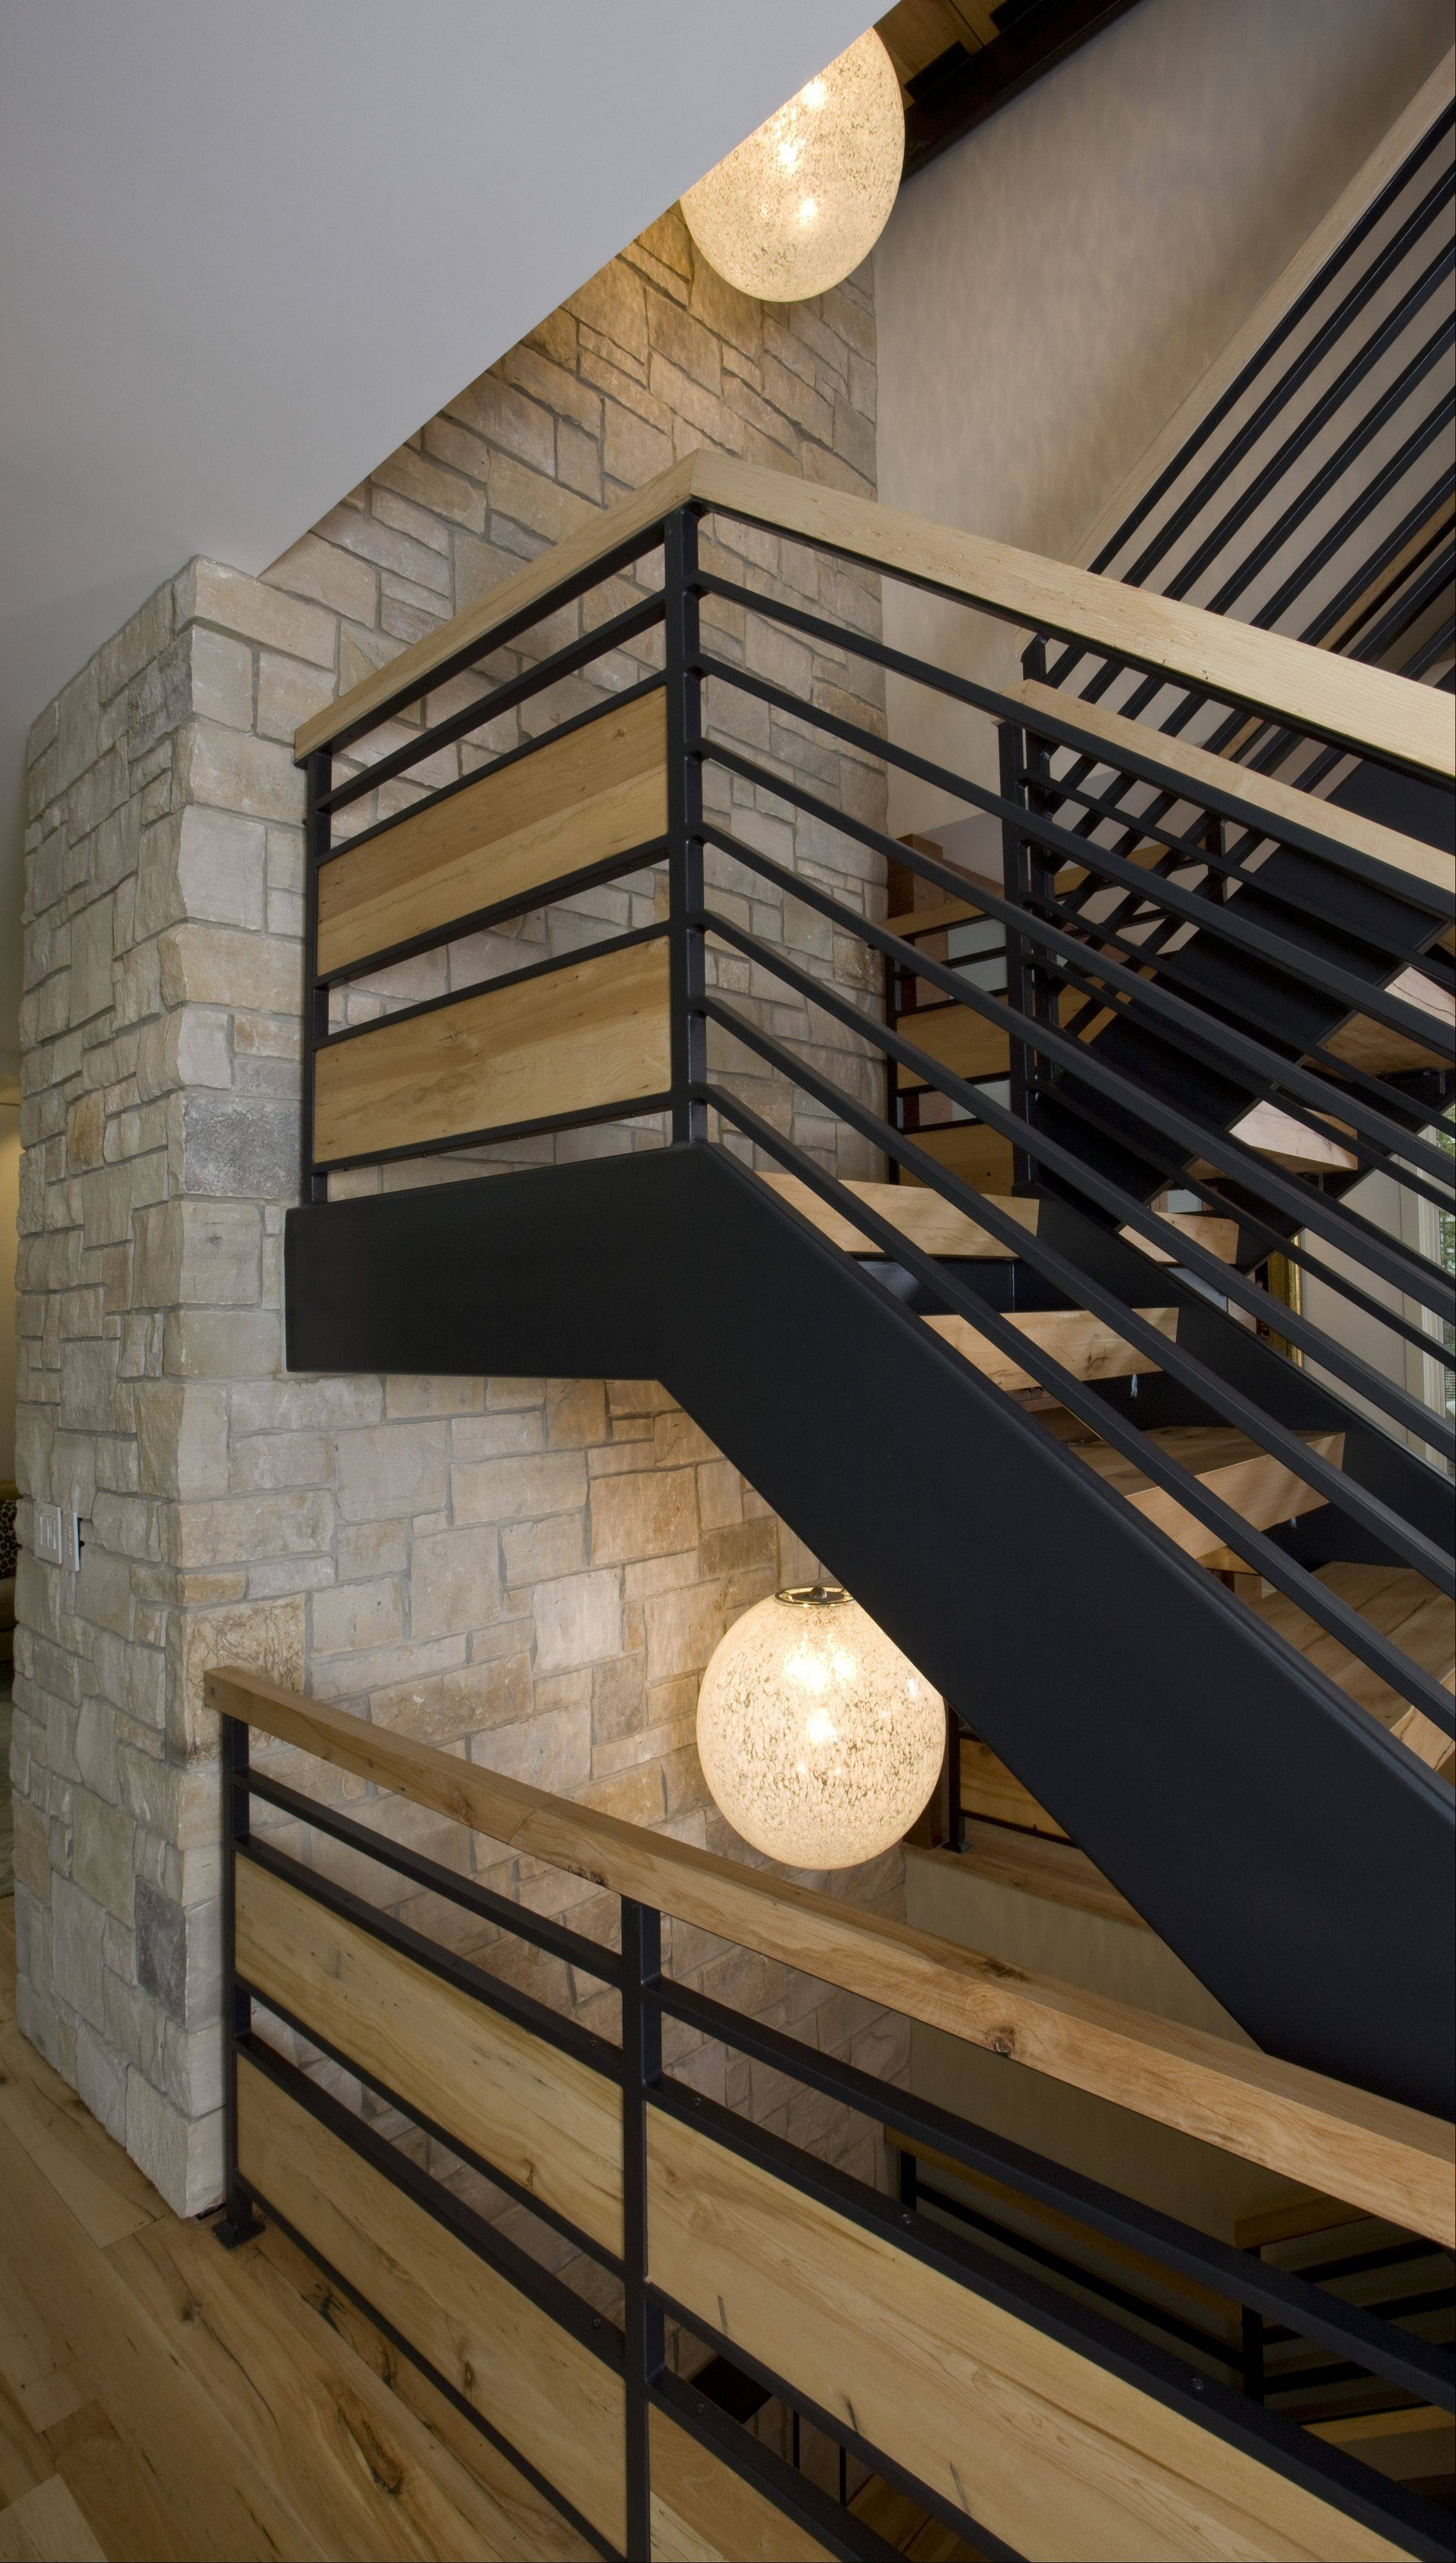 Reclaimed maple stair risers in this Wilmette home were made with factory timbers salvaged from a historic Simmons Furniture Factory in New London, Wis.